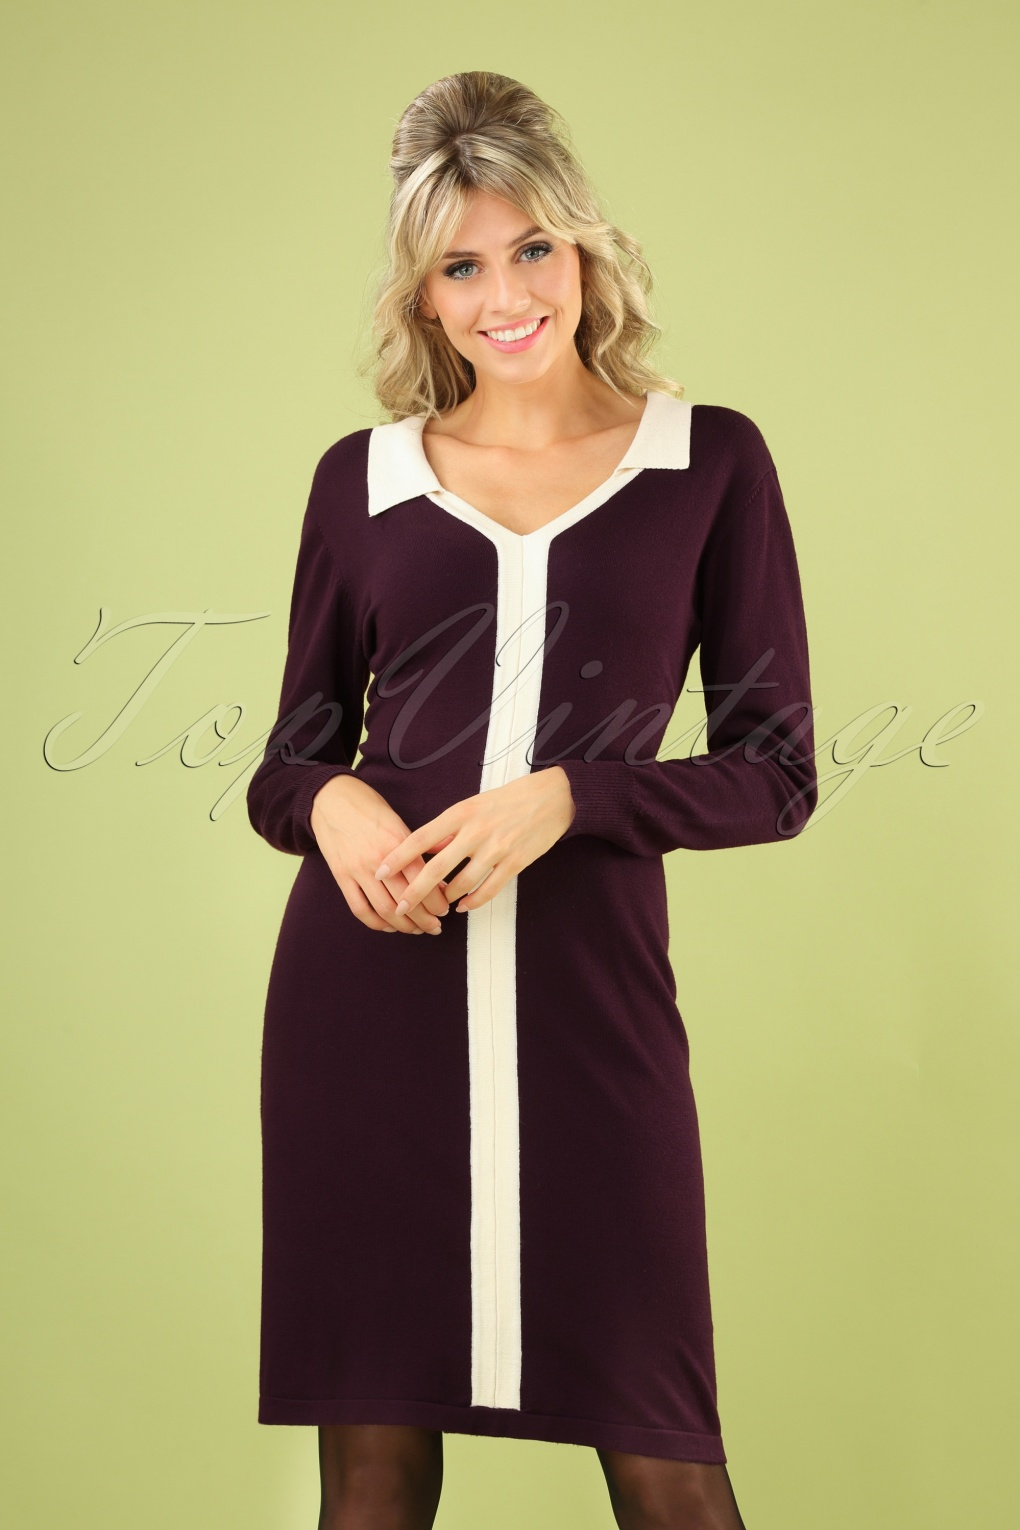 1960s Style Dresses, Clothing, Shoes UK 60s Cute Collar Jumper Dress in Aubergine £53.44 AT vintagedancer.com